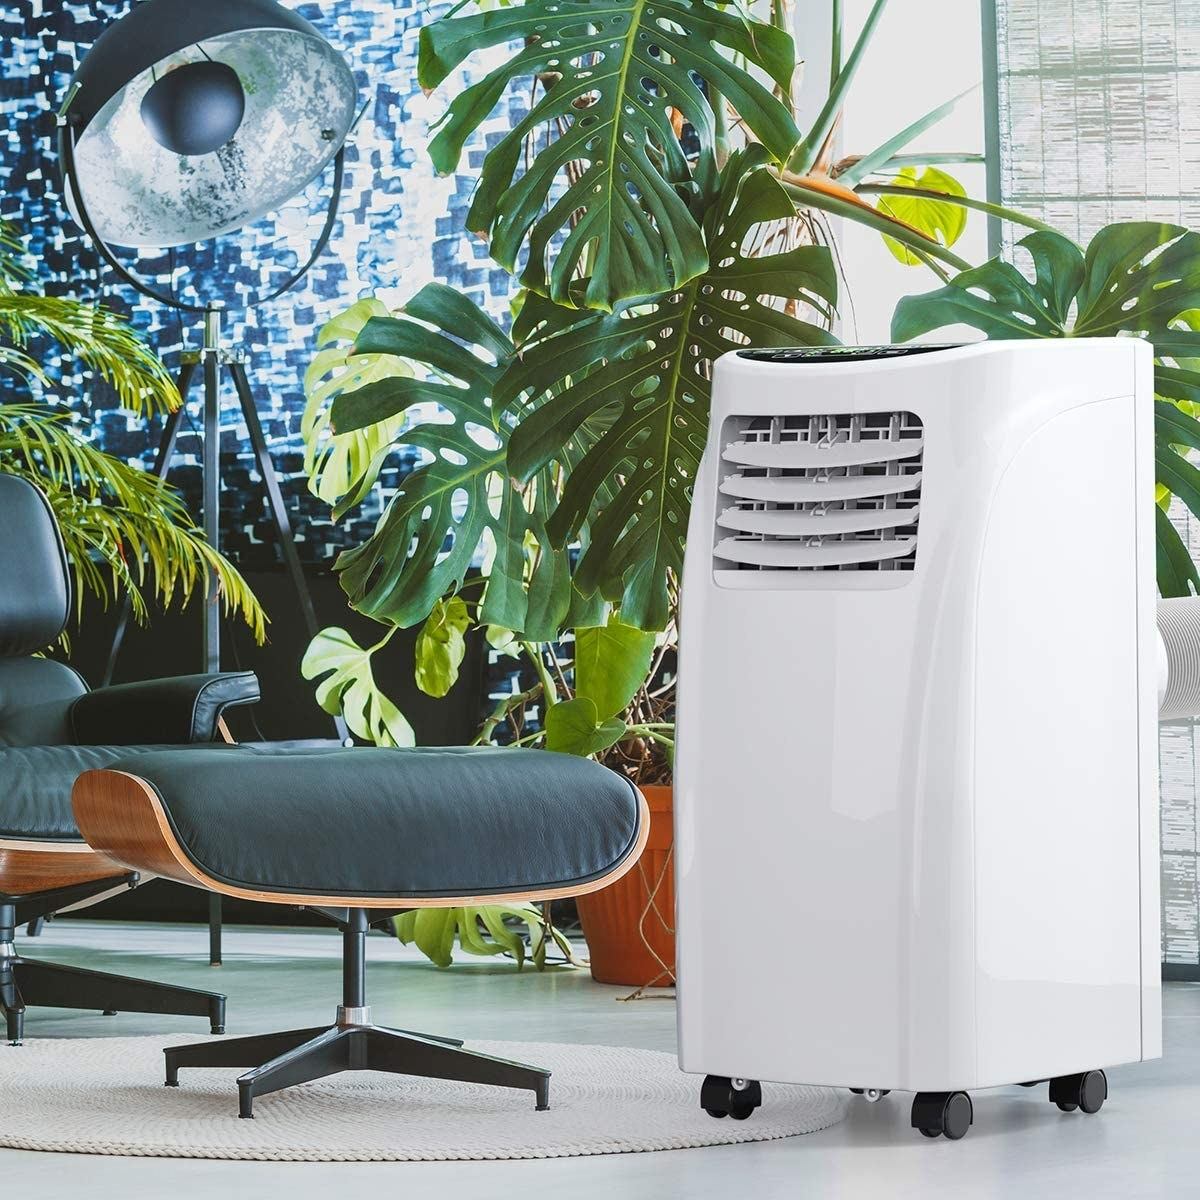 The air conditioner in an office